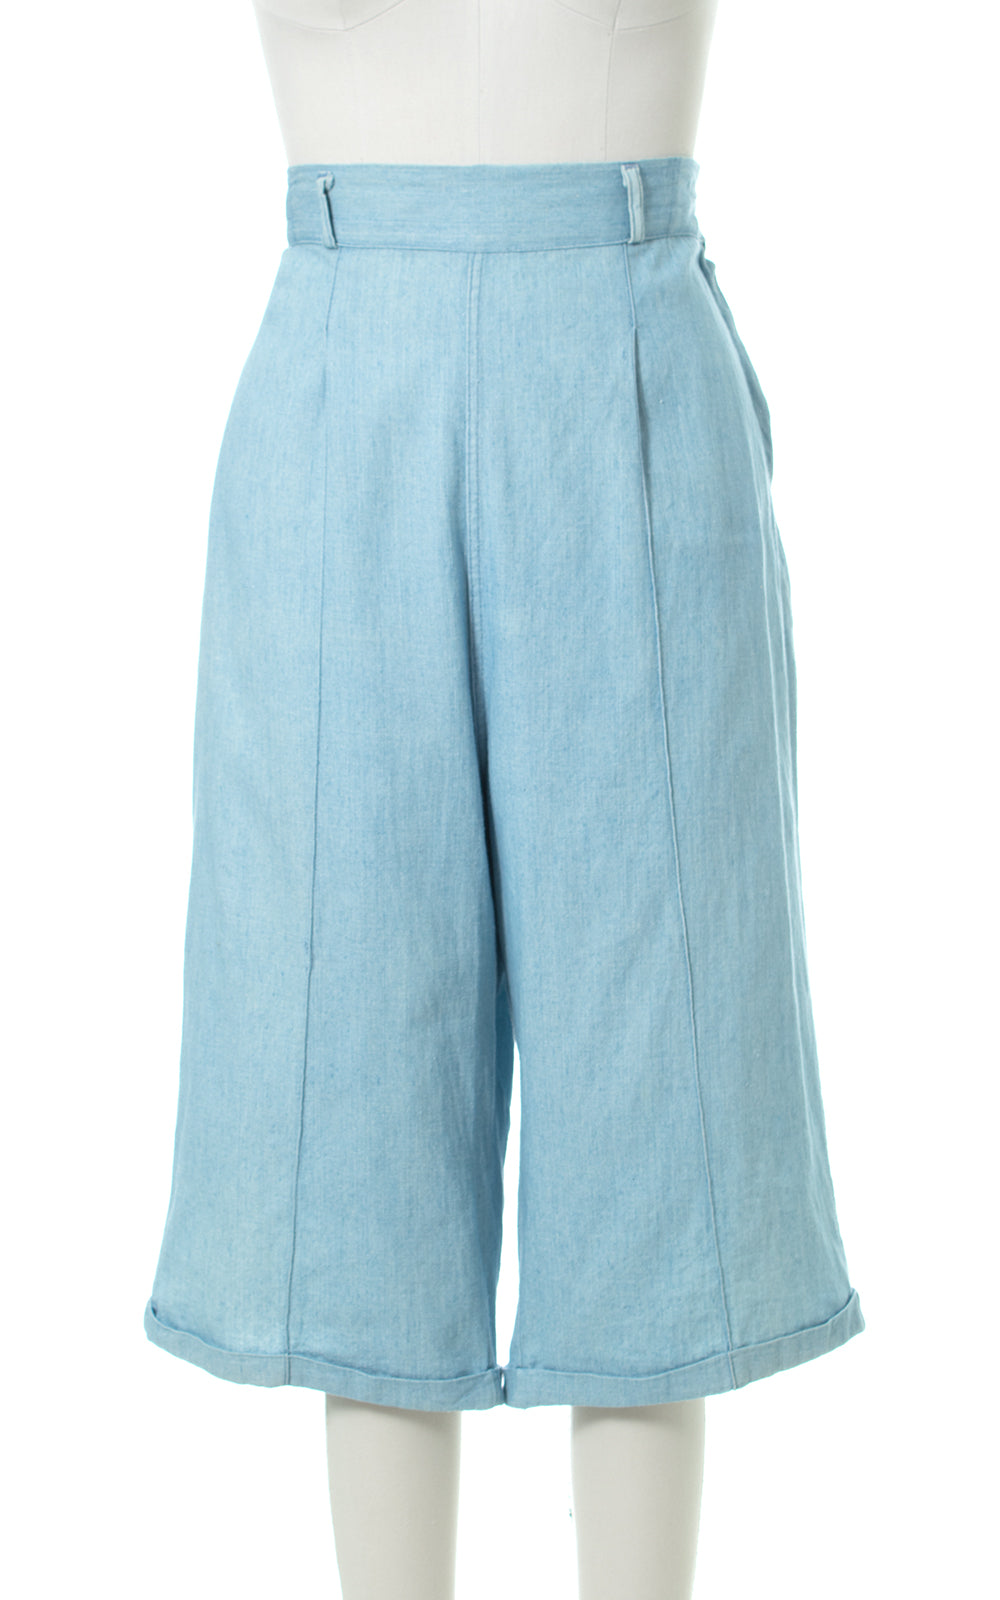 1950s Chambray Wide Leg Cropped Jeans